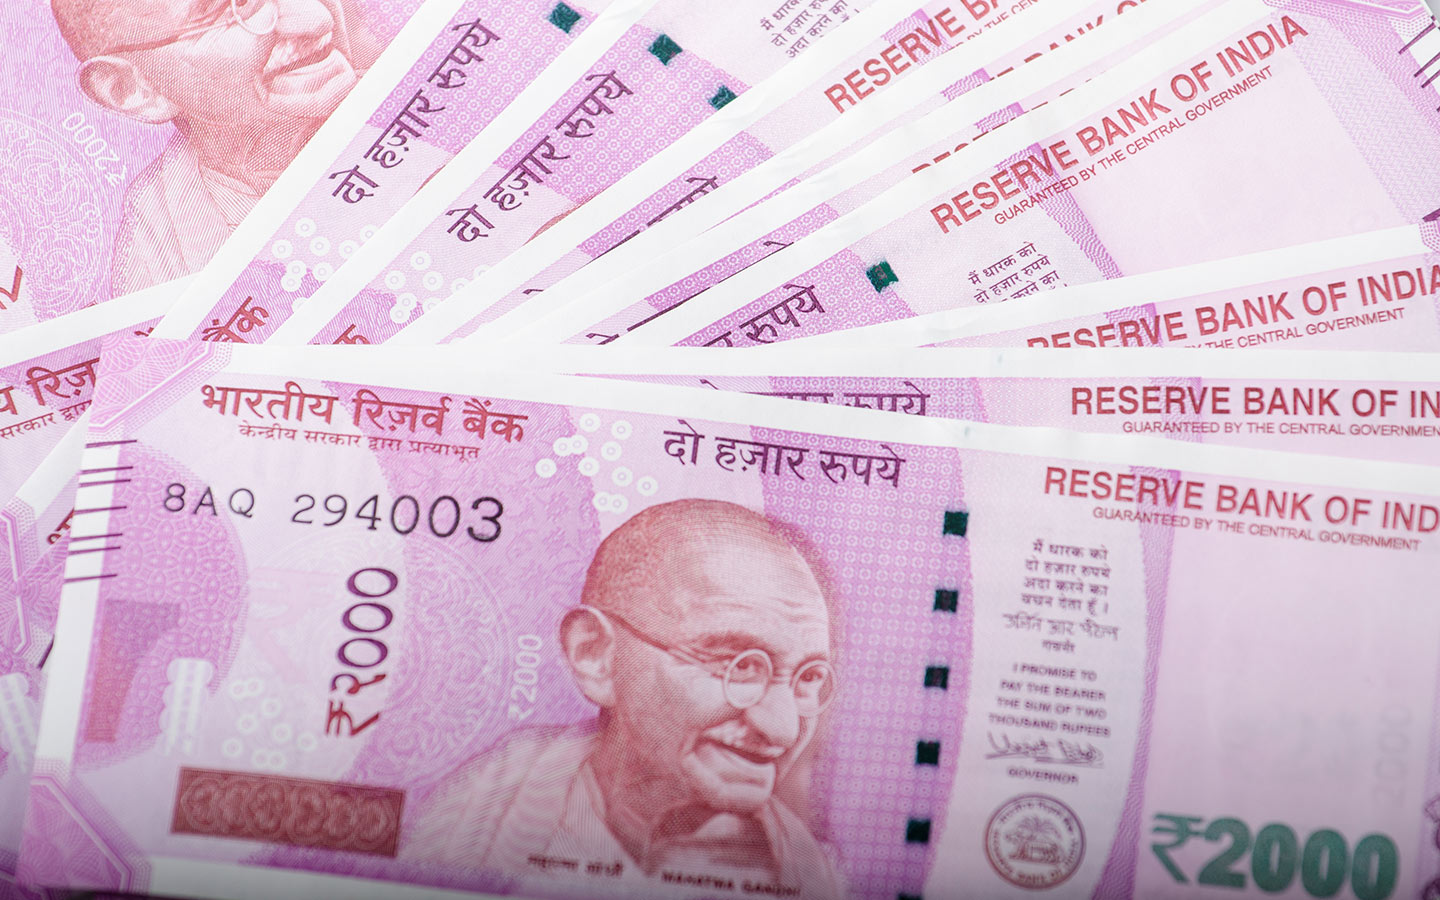 INR 2000 notes spread out